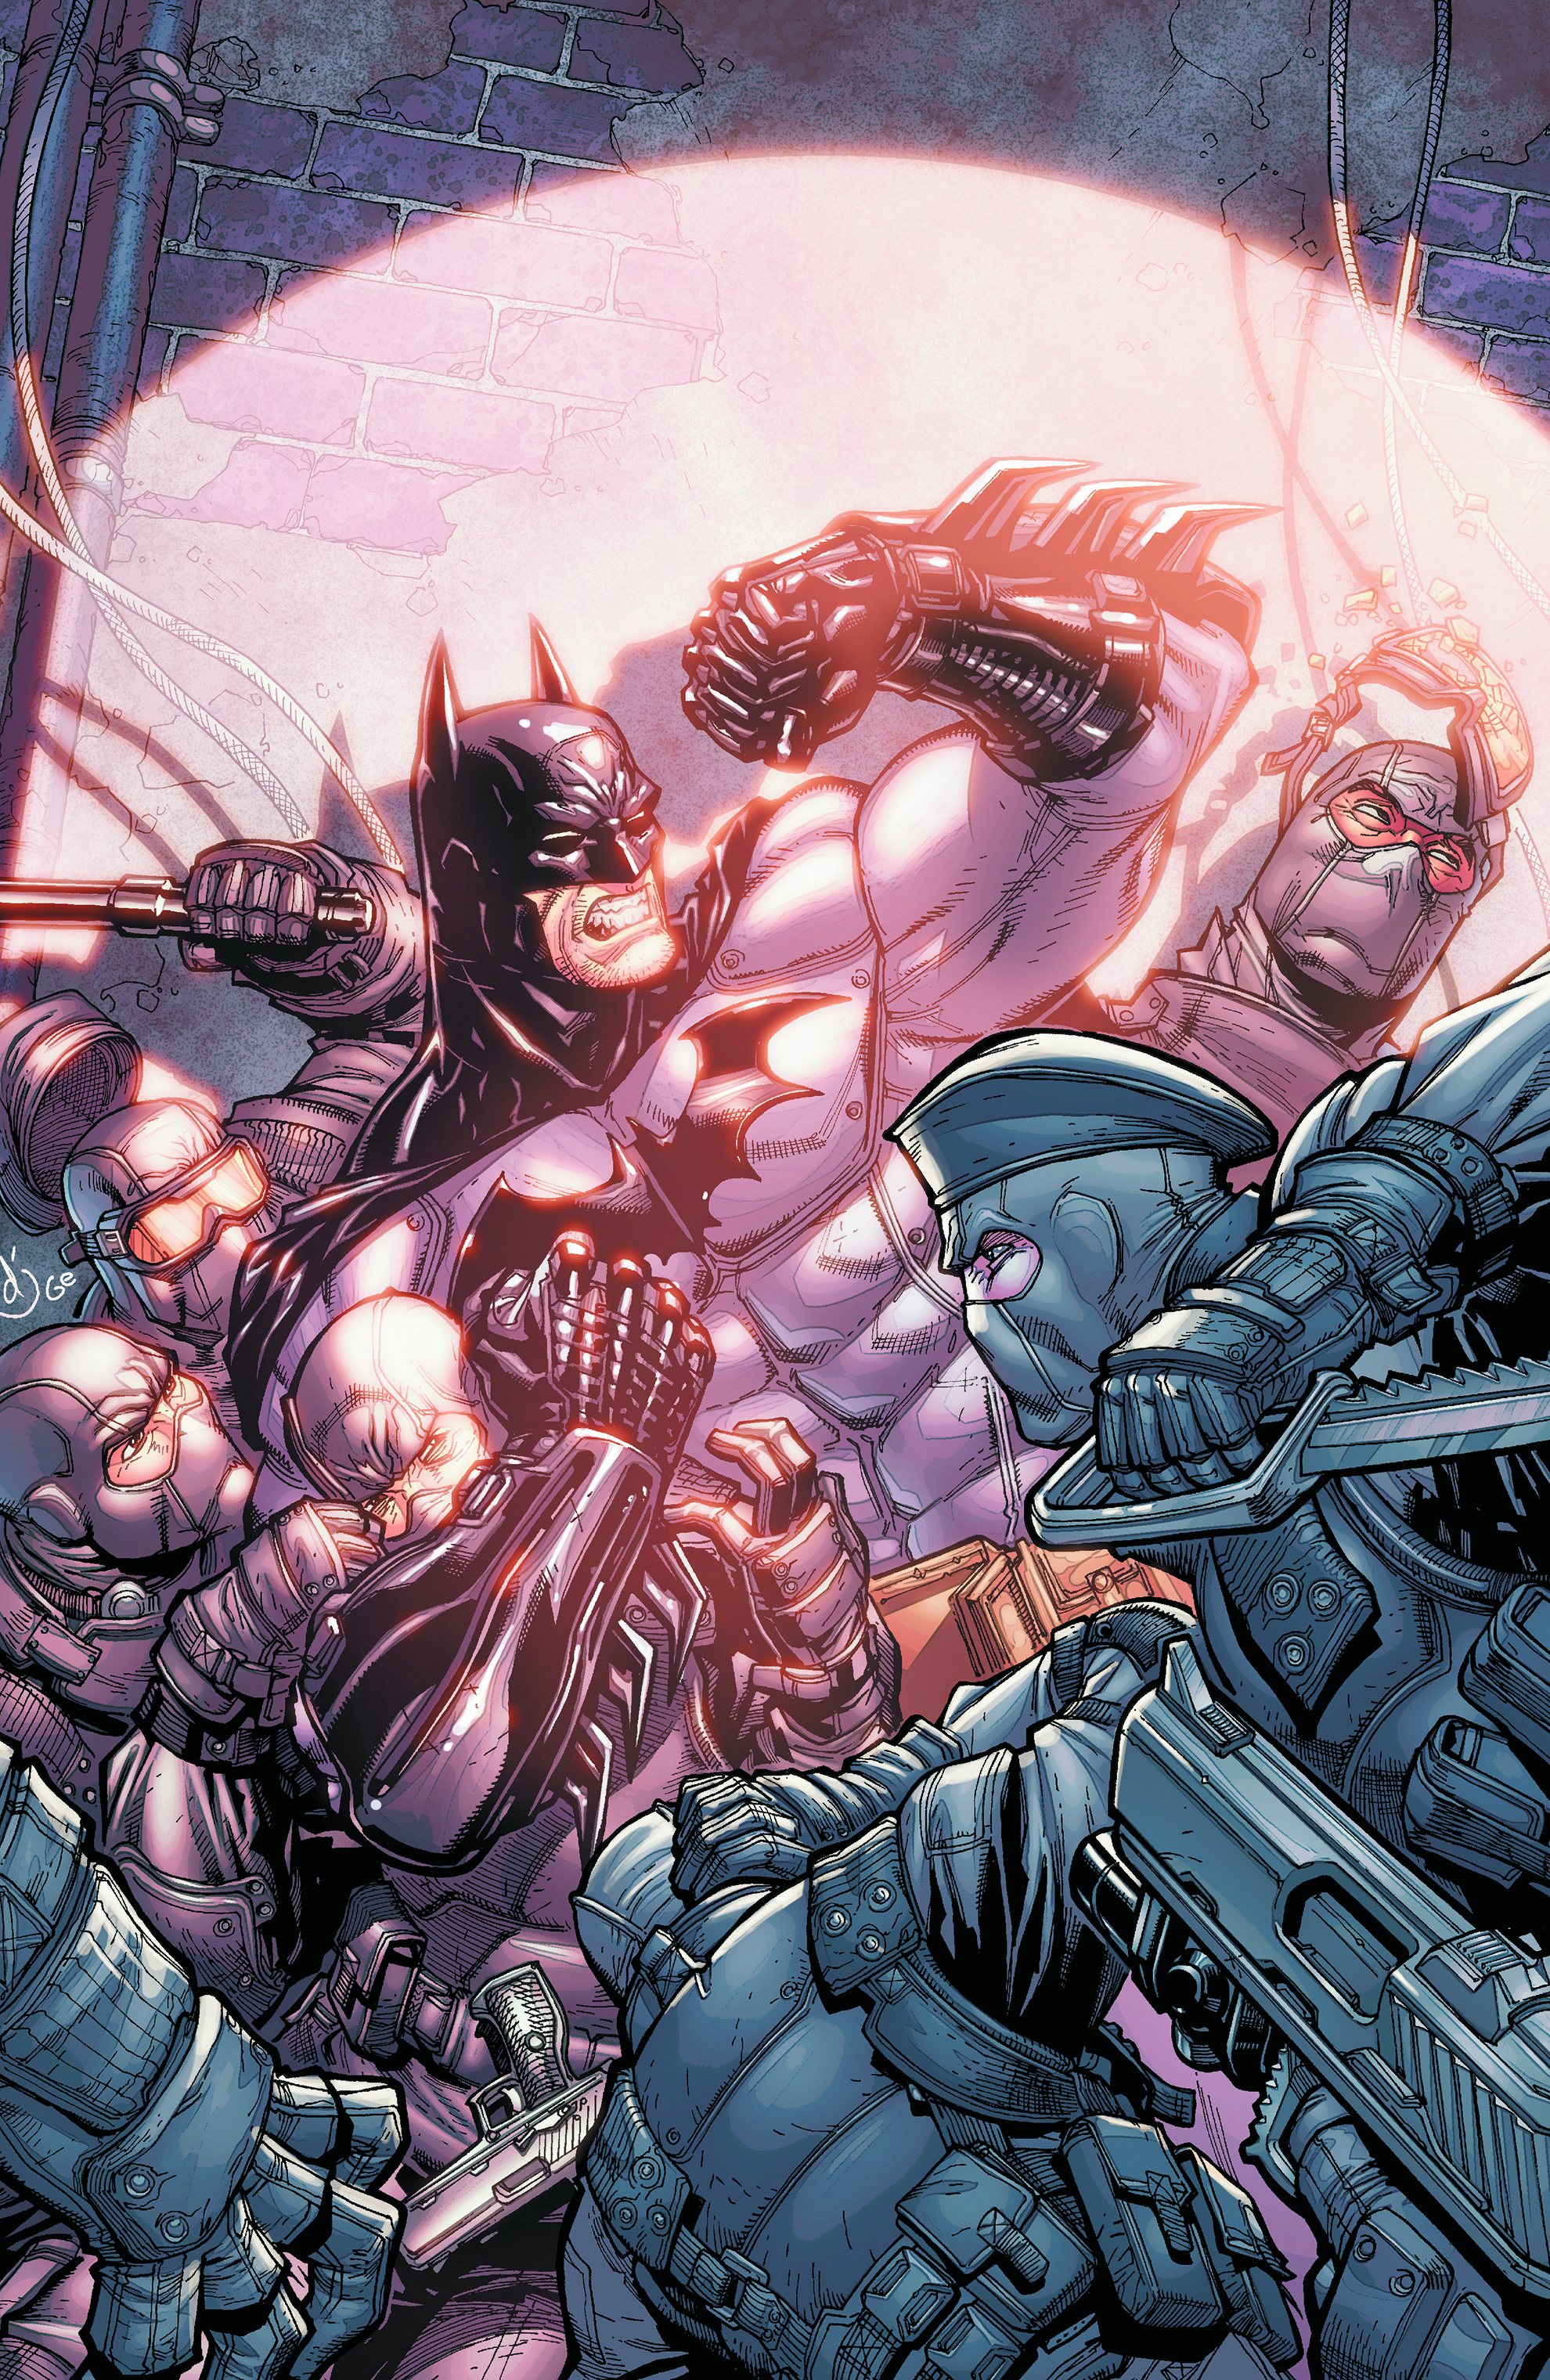 BATMAN ARKHAM CITY #4 (OF 5)